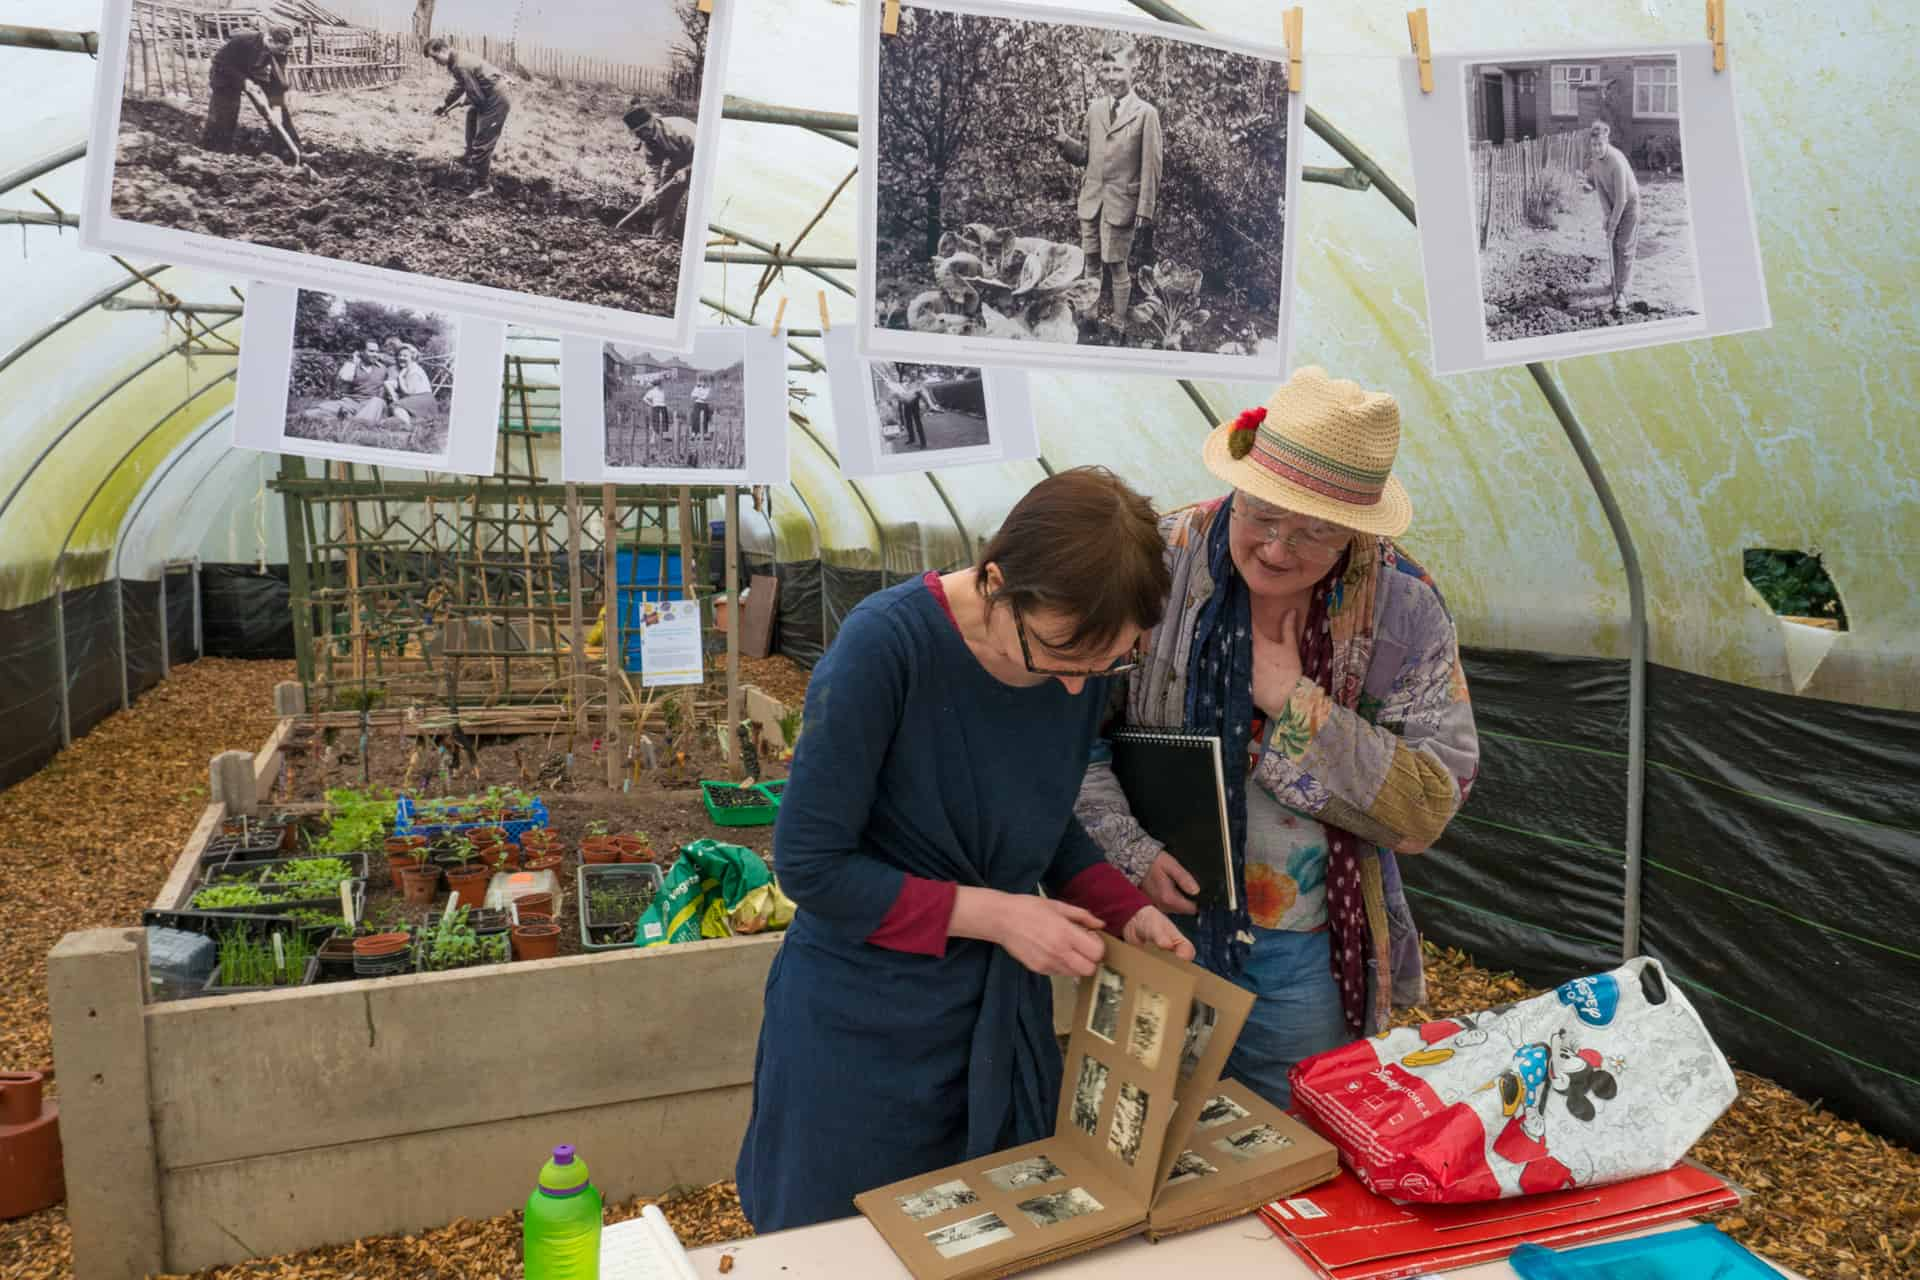 Moya Lloyd and Clare Wasserman look through a photography collection lent to the Living Memory project.